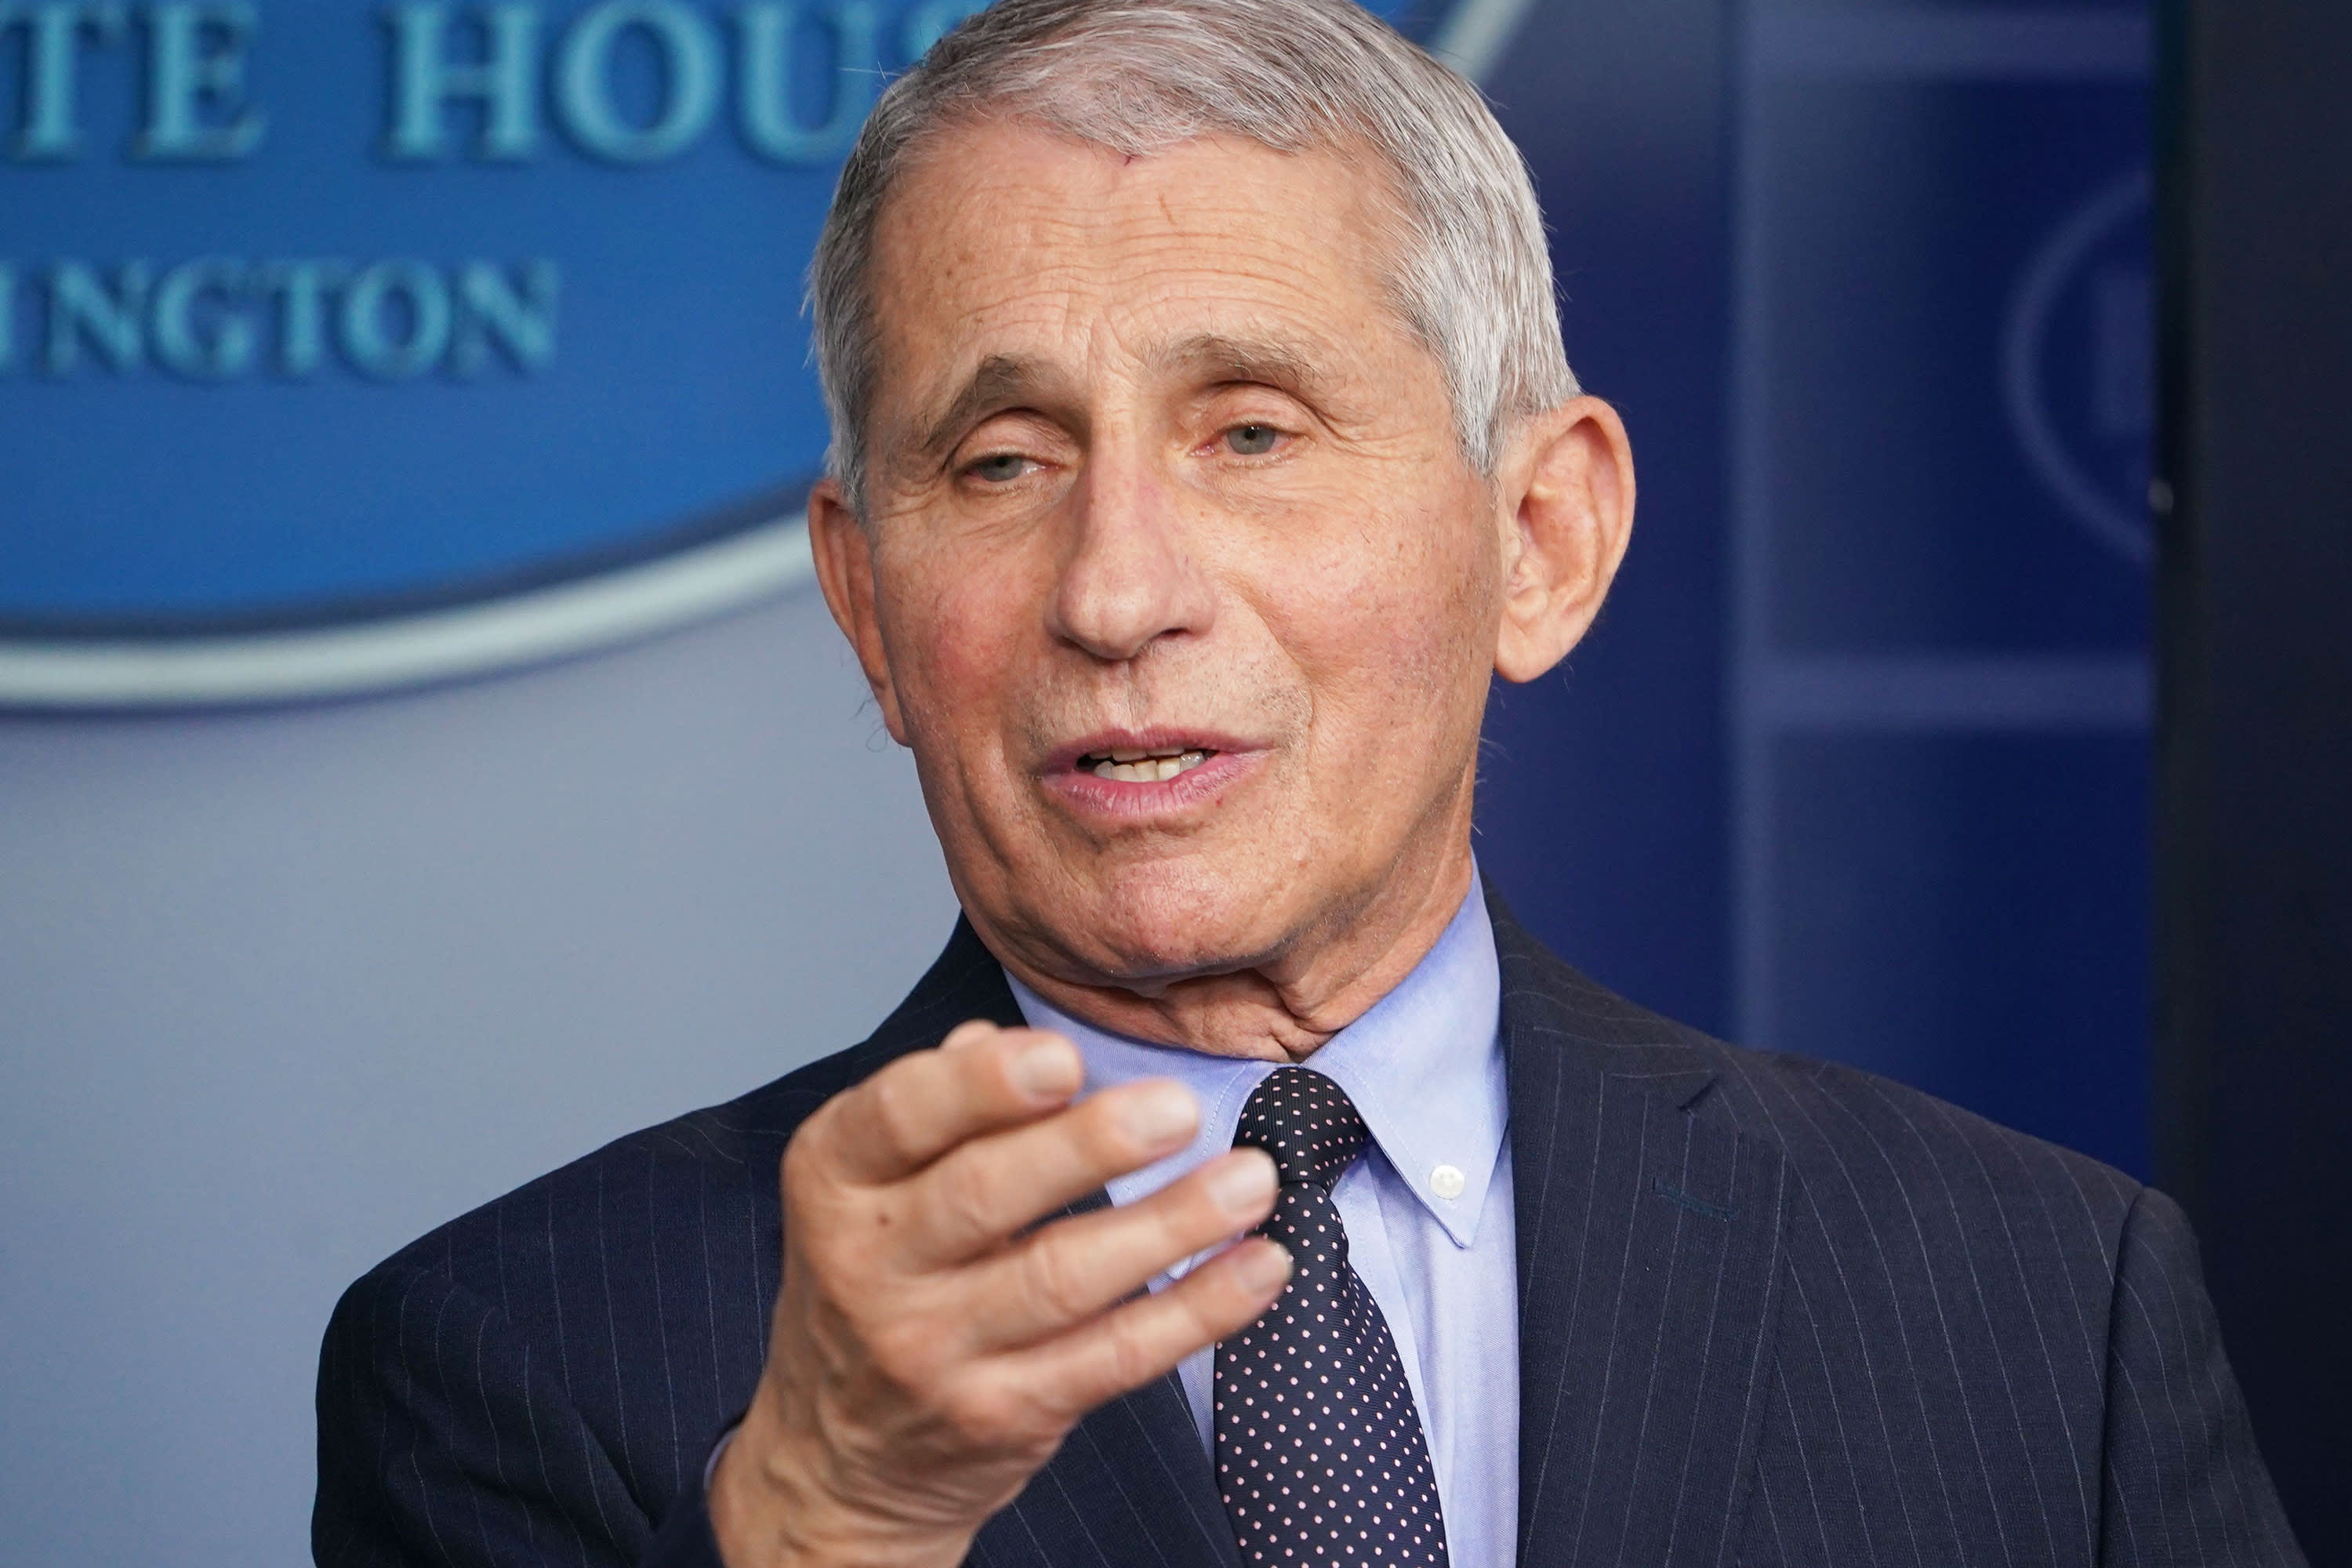 Dr. Anthony Fauci giving a statement about social distancing